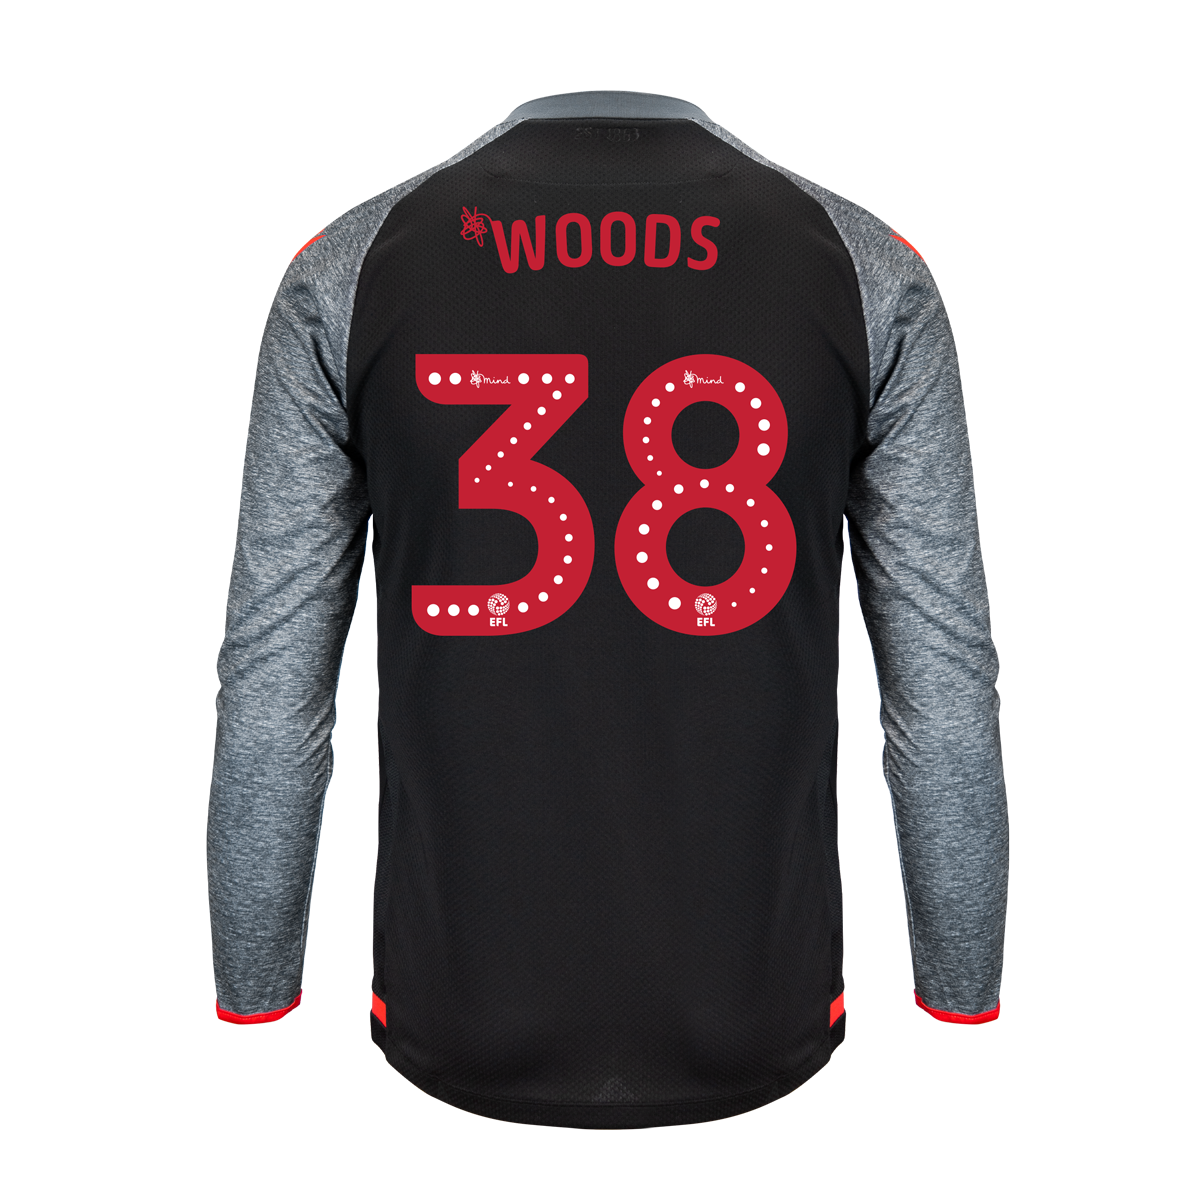 2019/20 Adult Away LS Shirt - Woods